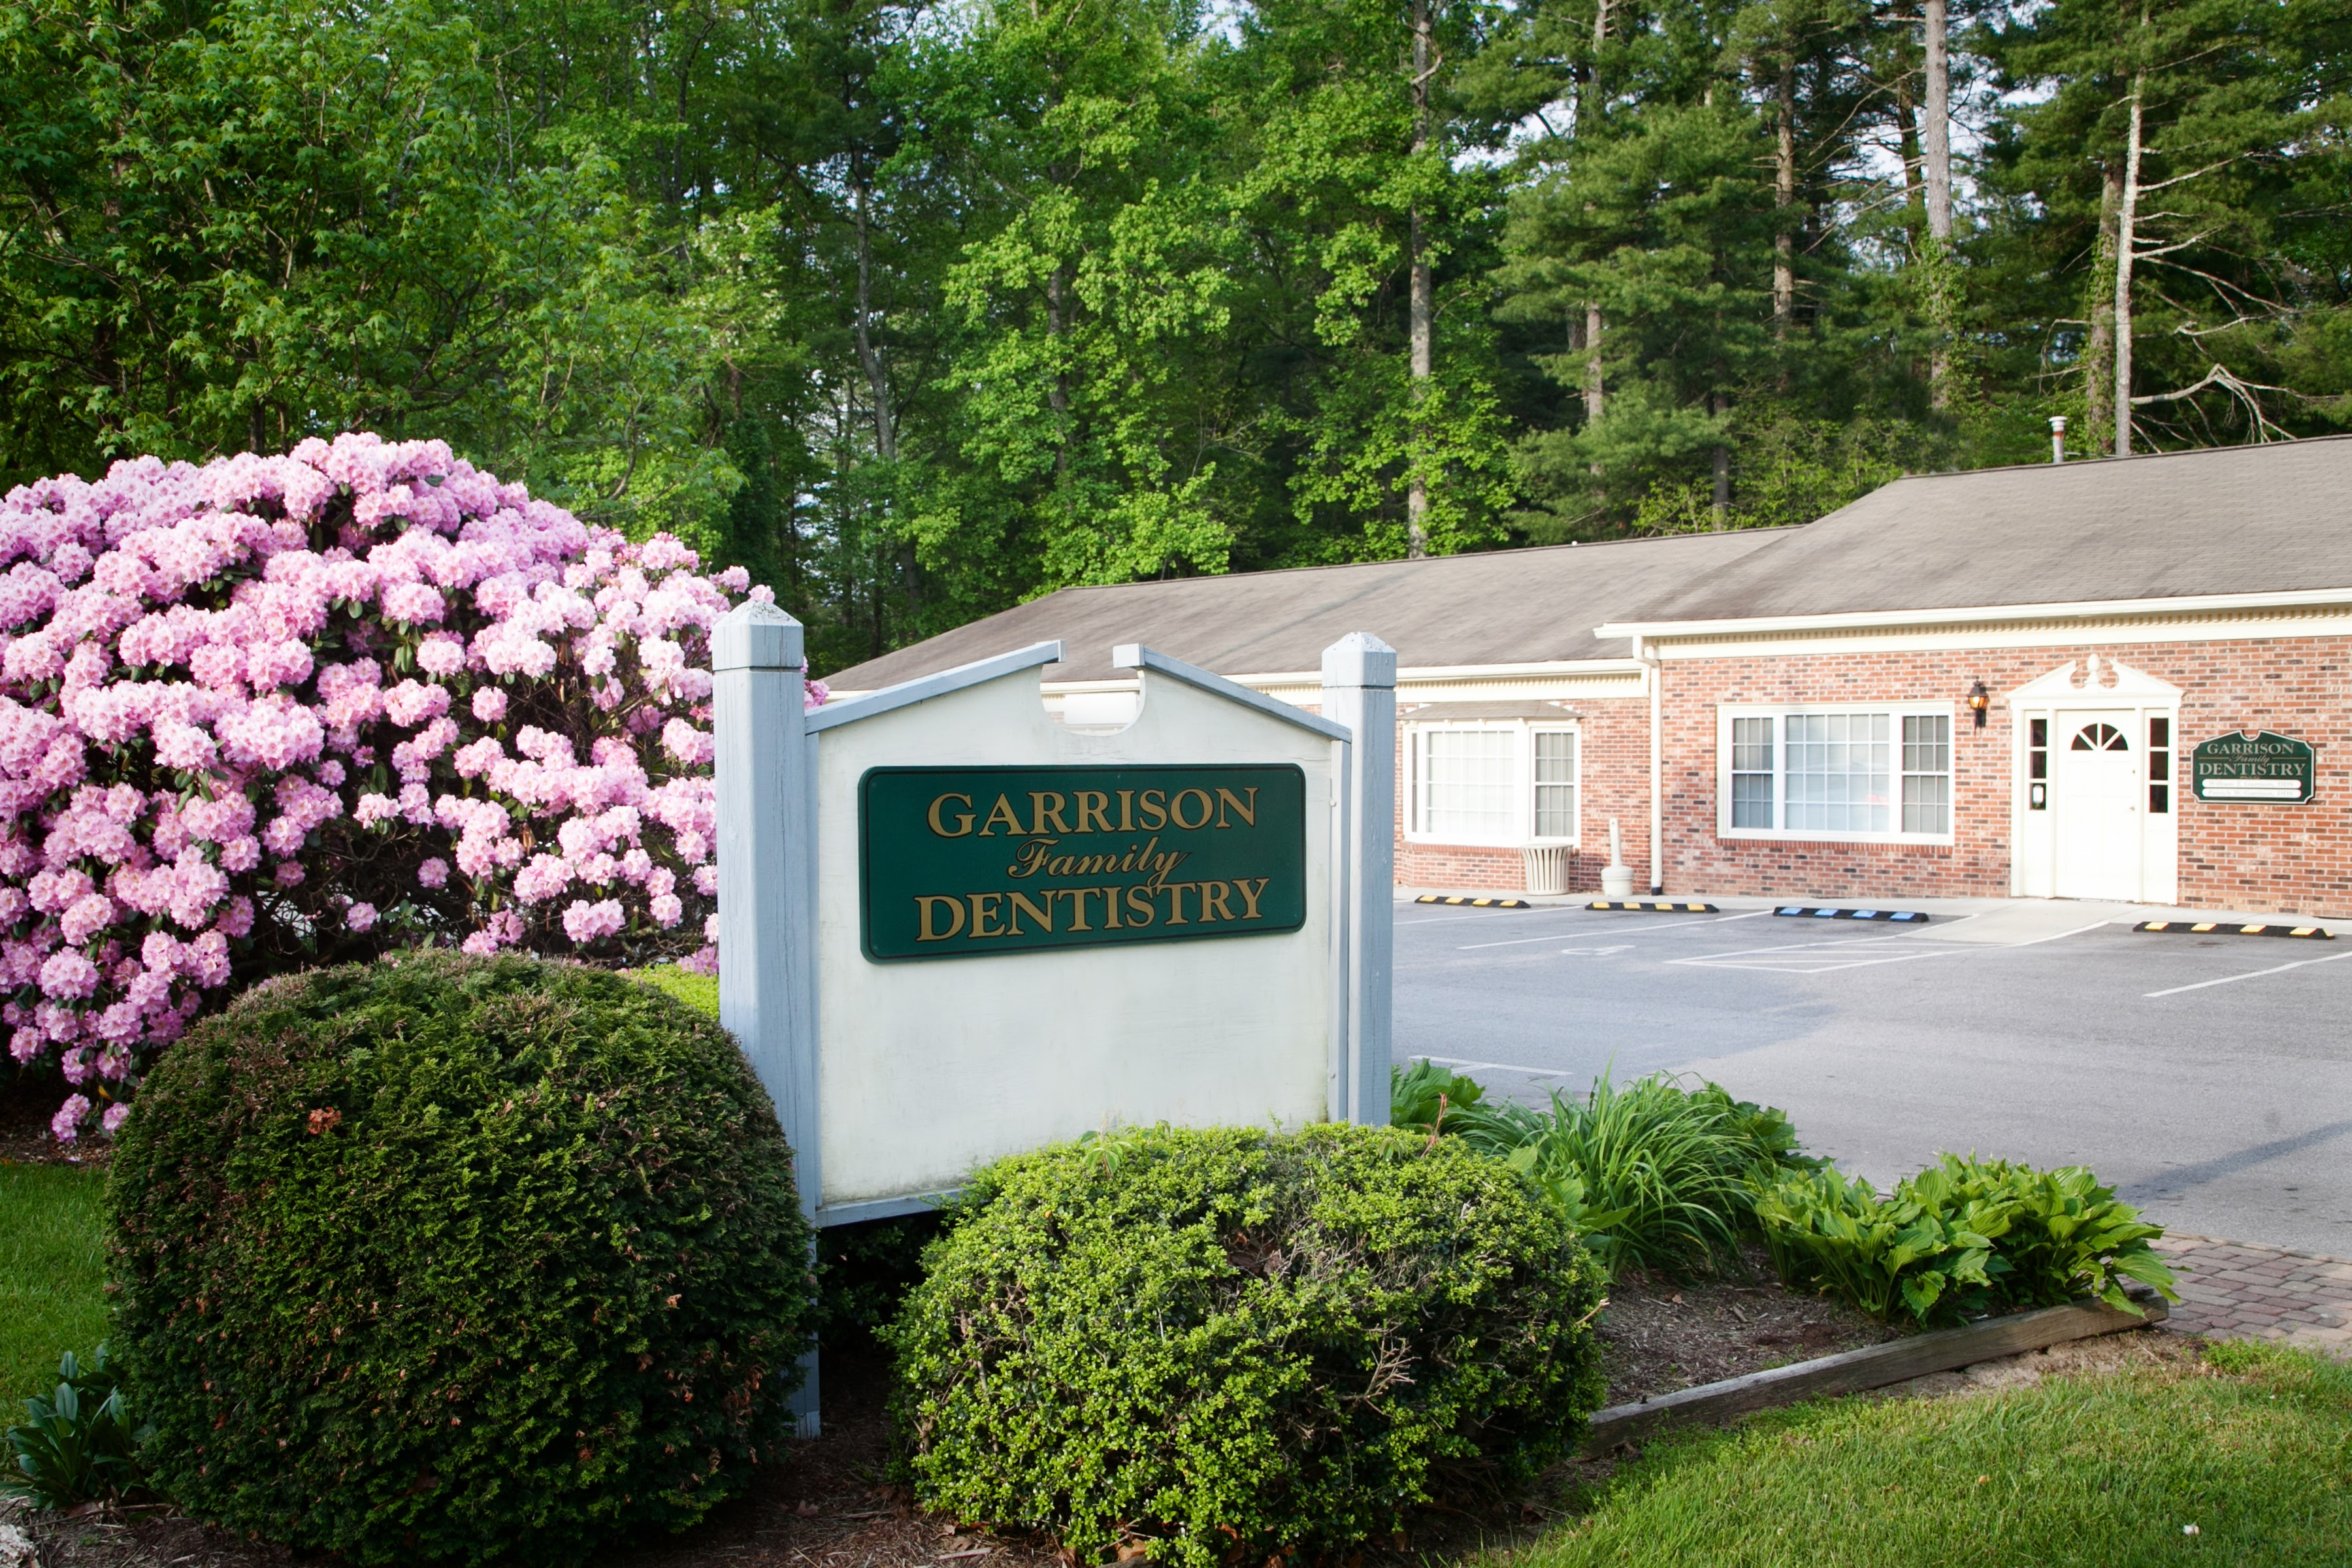 The office of Garrison Family Dentistry